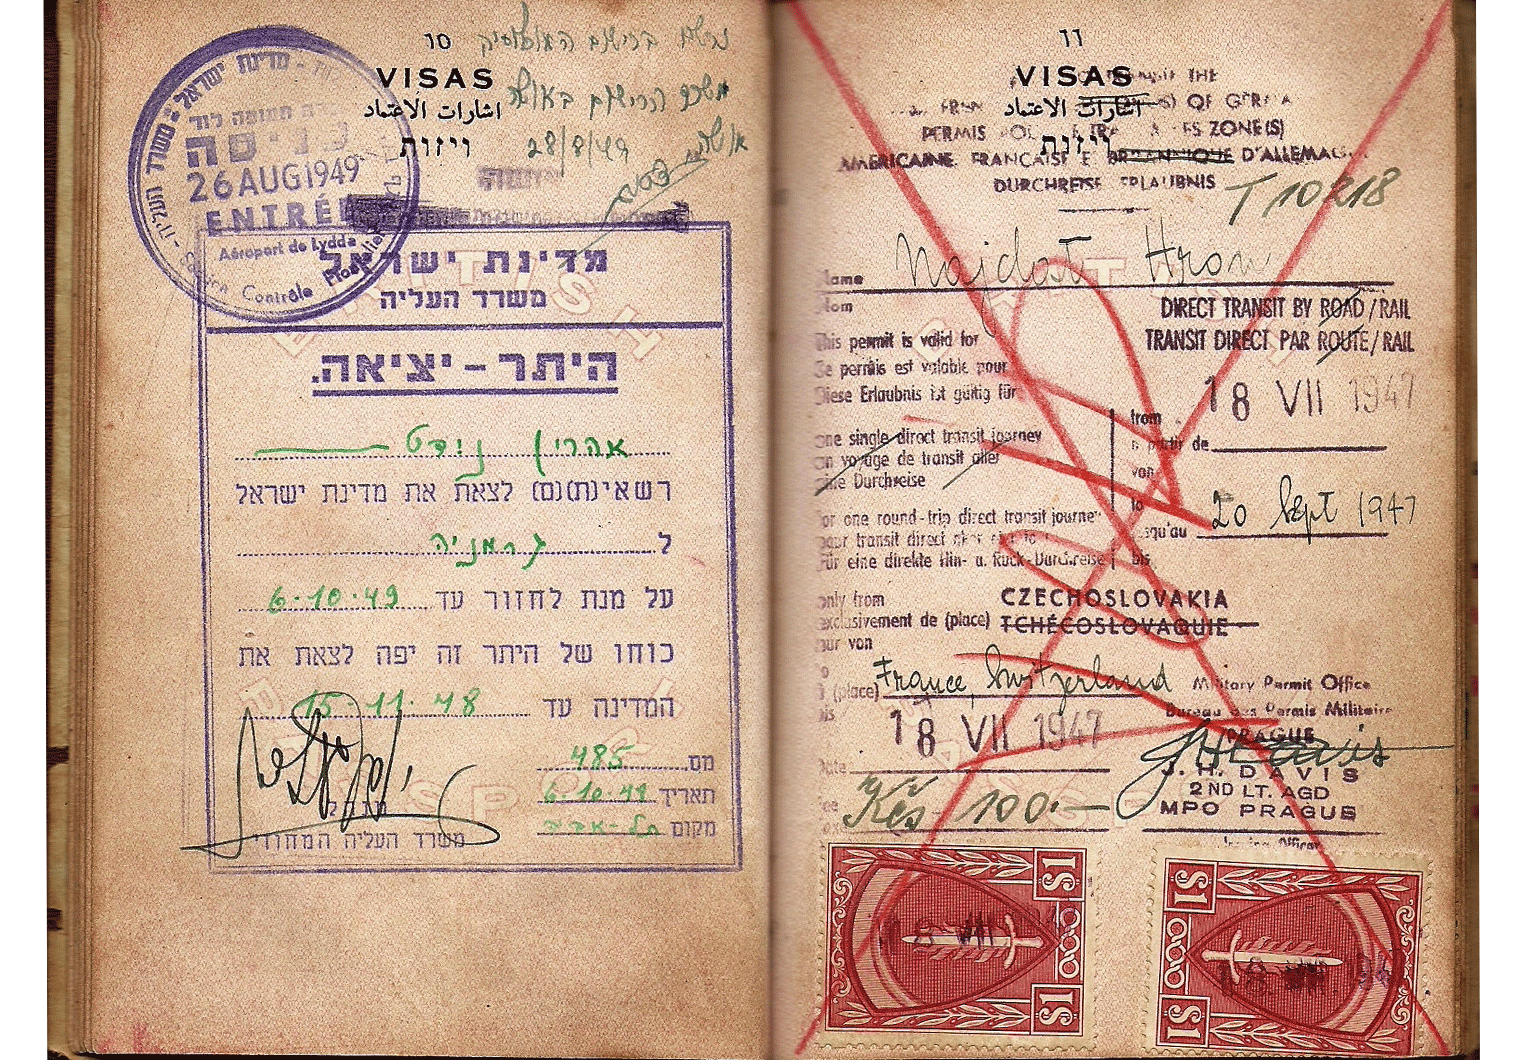 1948 early Israeli visa inside a passport